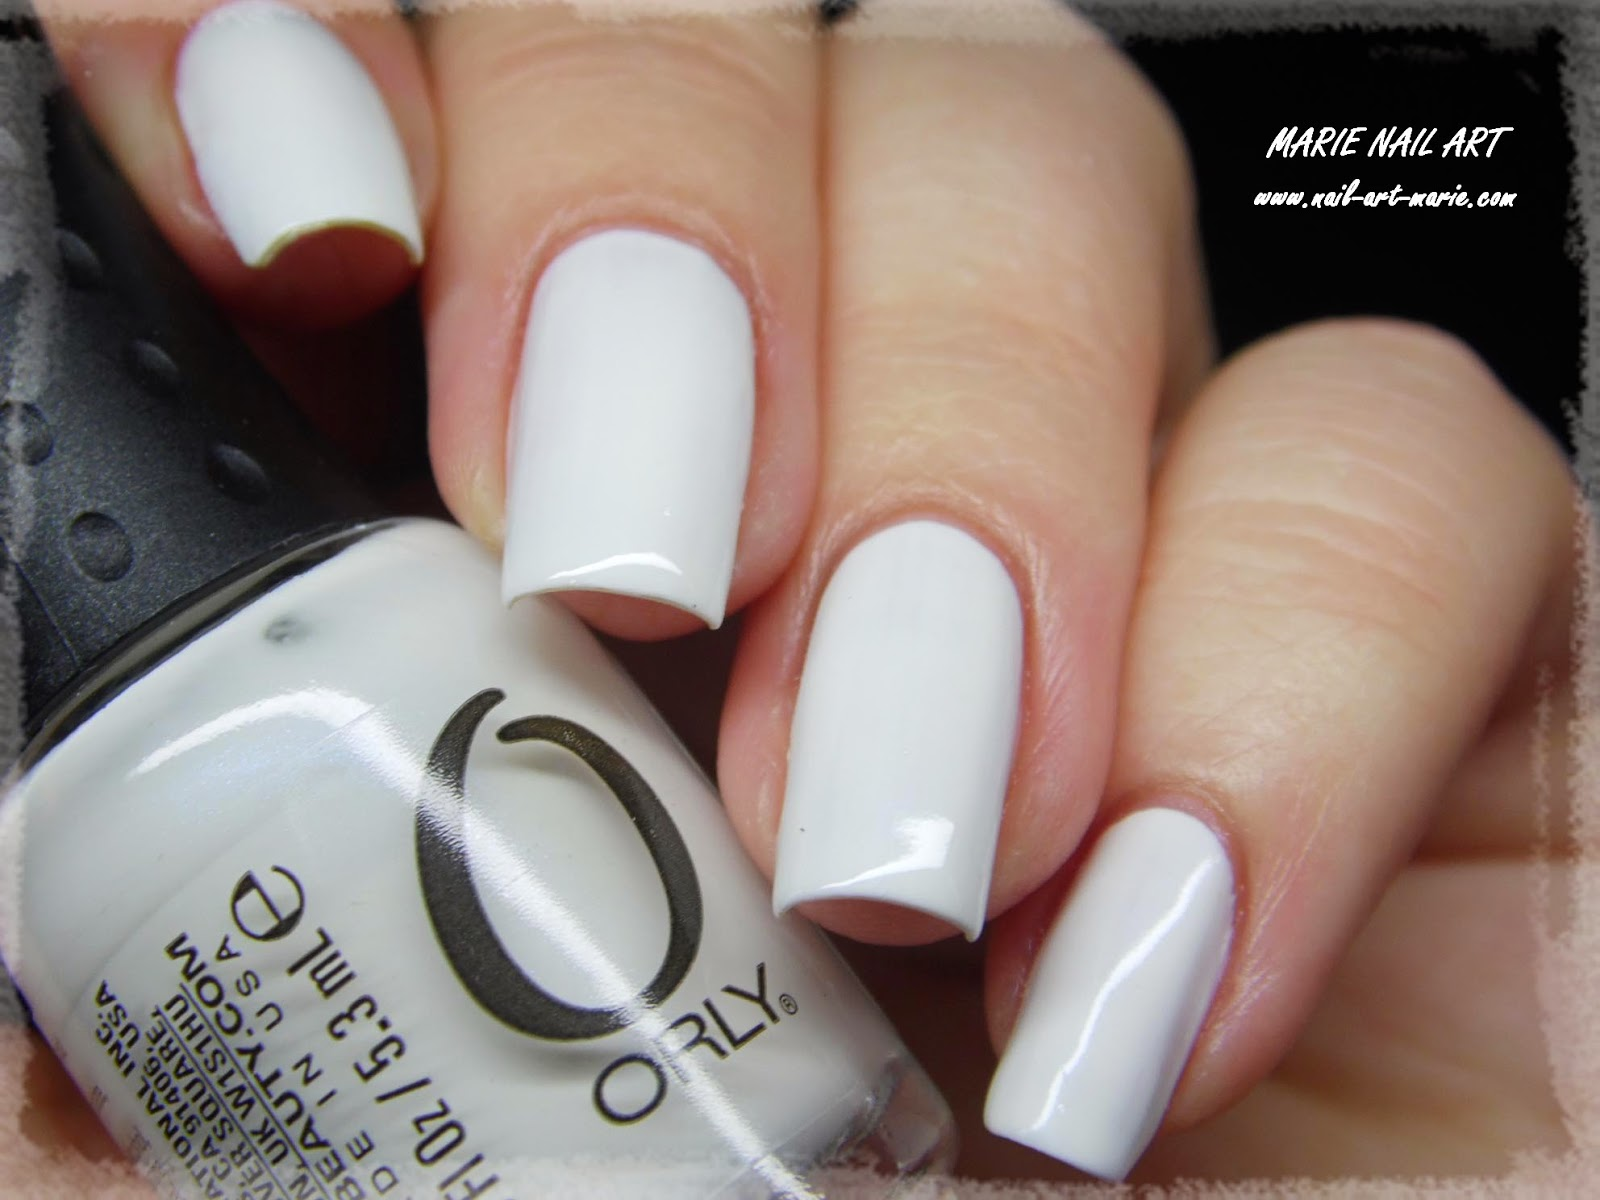 Orly Dayglow3